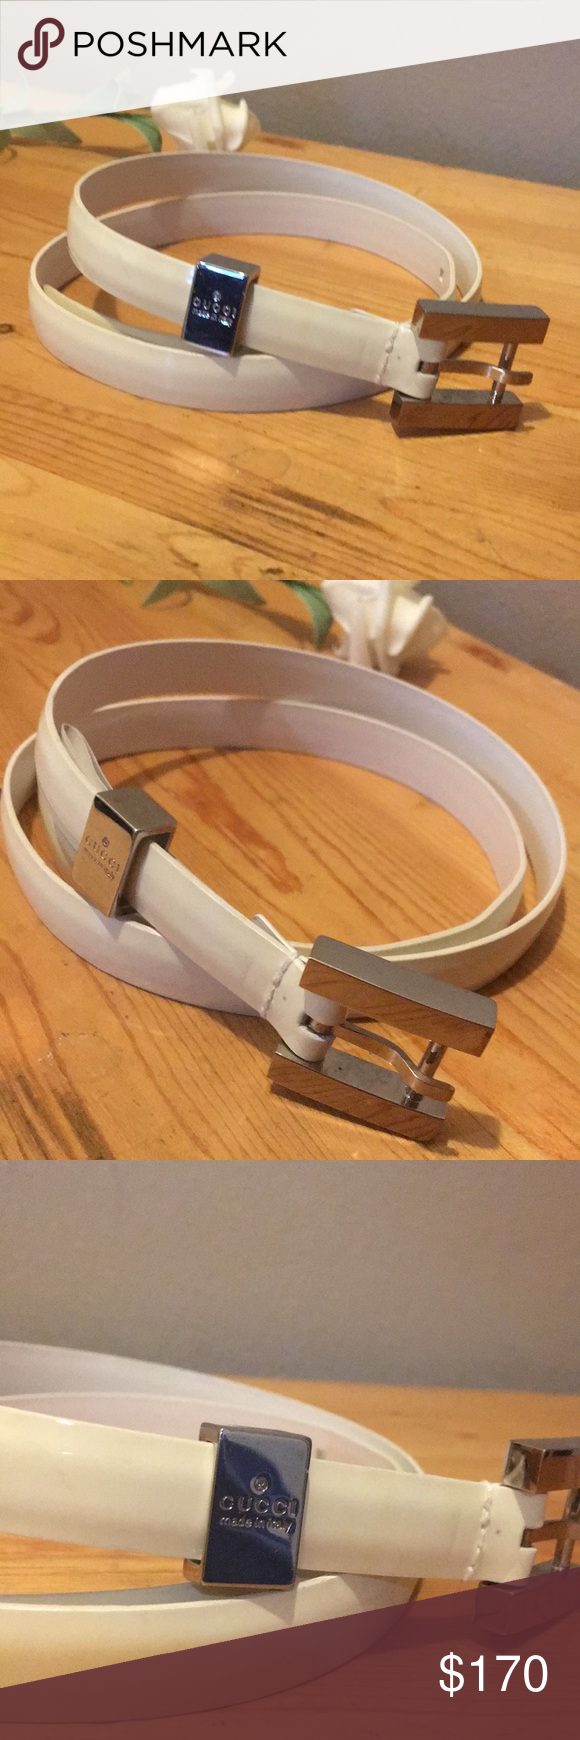 d497eca1c06 GUCCI Skinny Leather Belt Size S Preowned Size S Skinny Patent Leather Off-white Creme  Belt. Signature silver tone hardware. Minimal signs of wear and ...